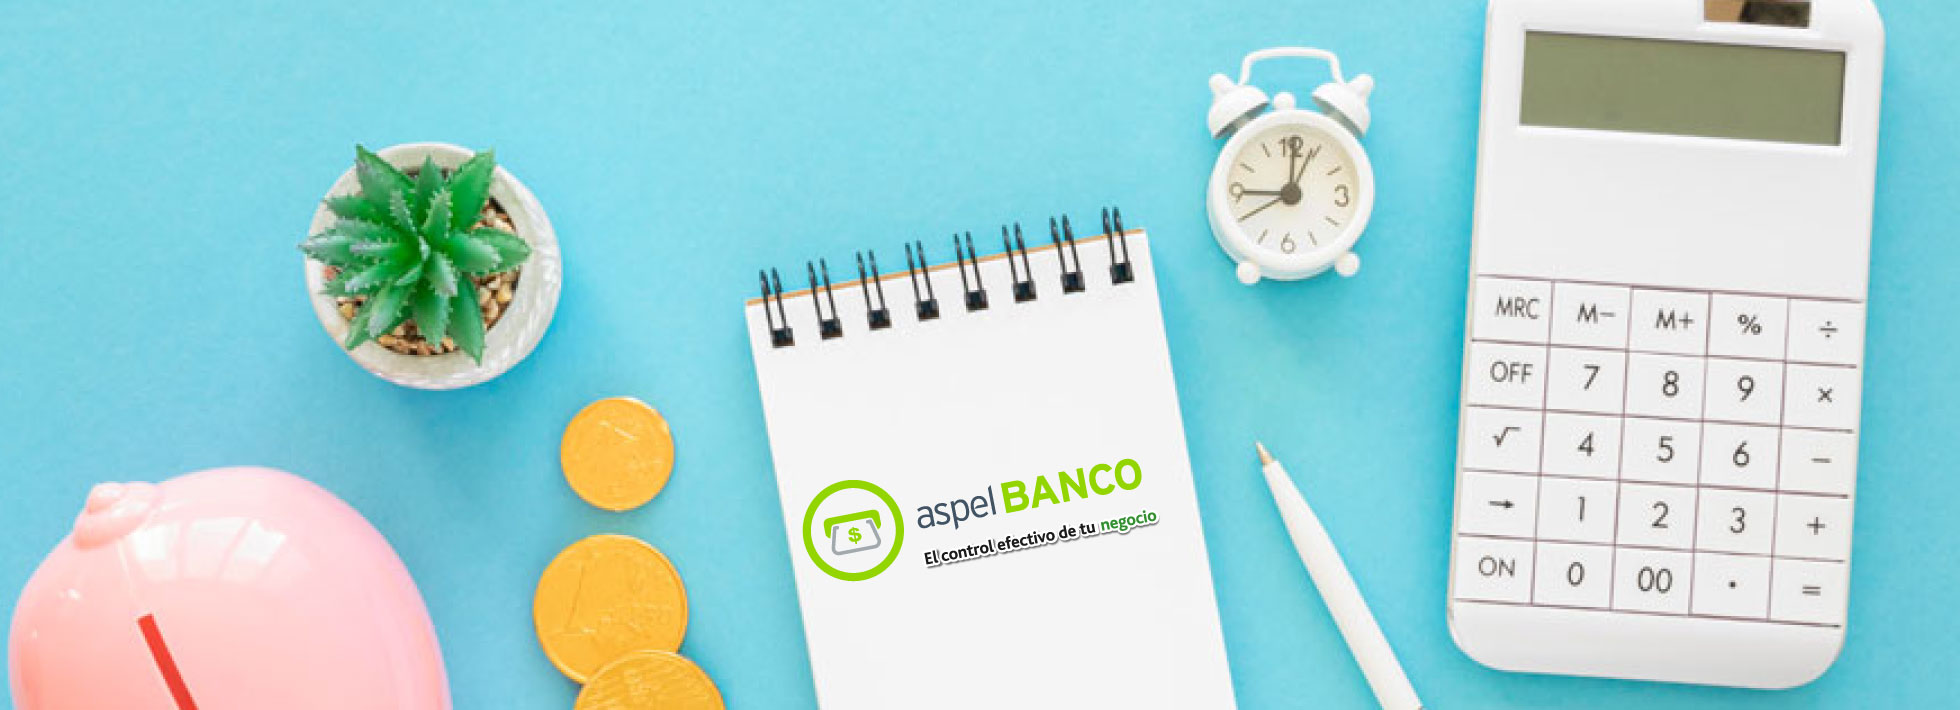 Reinstalable 6 aspel banco 5